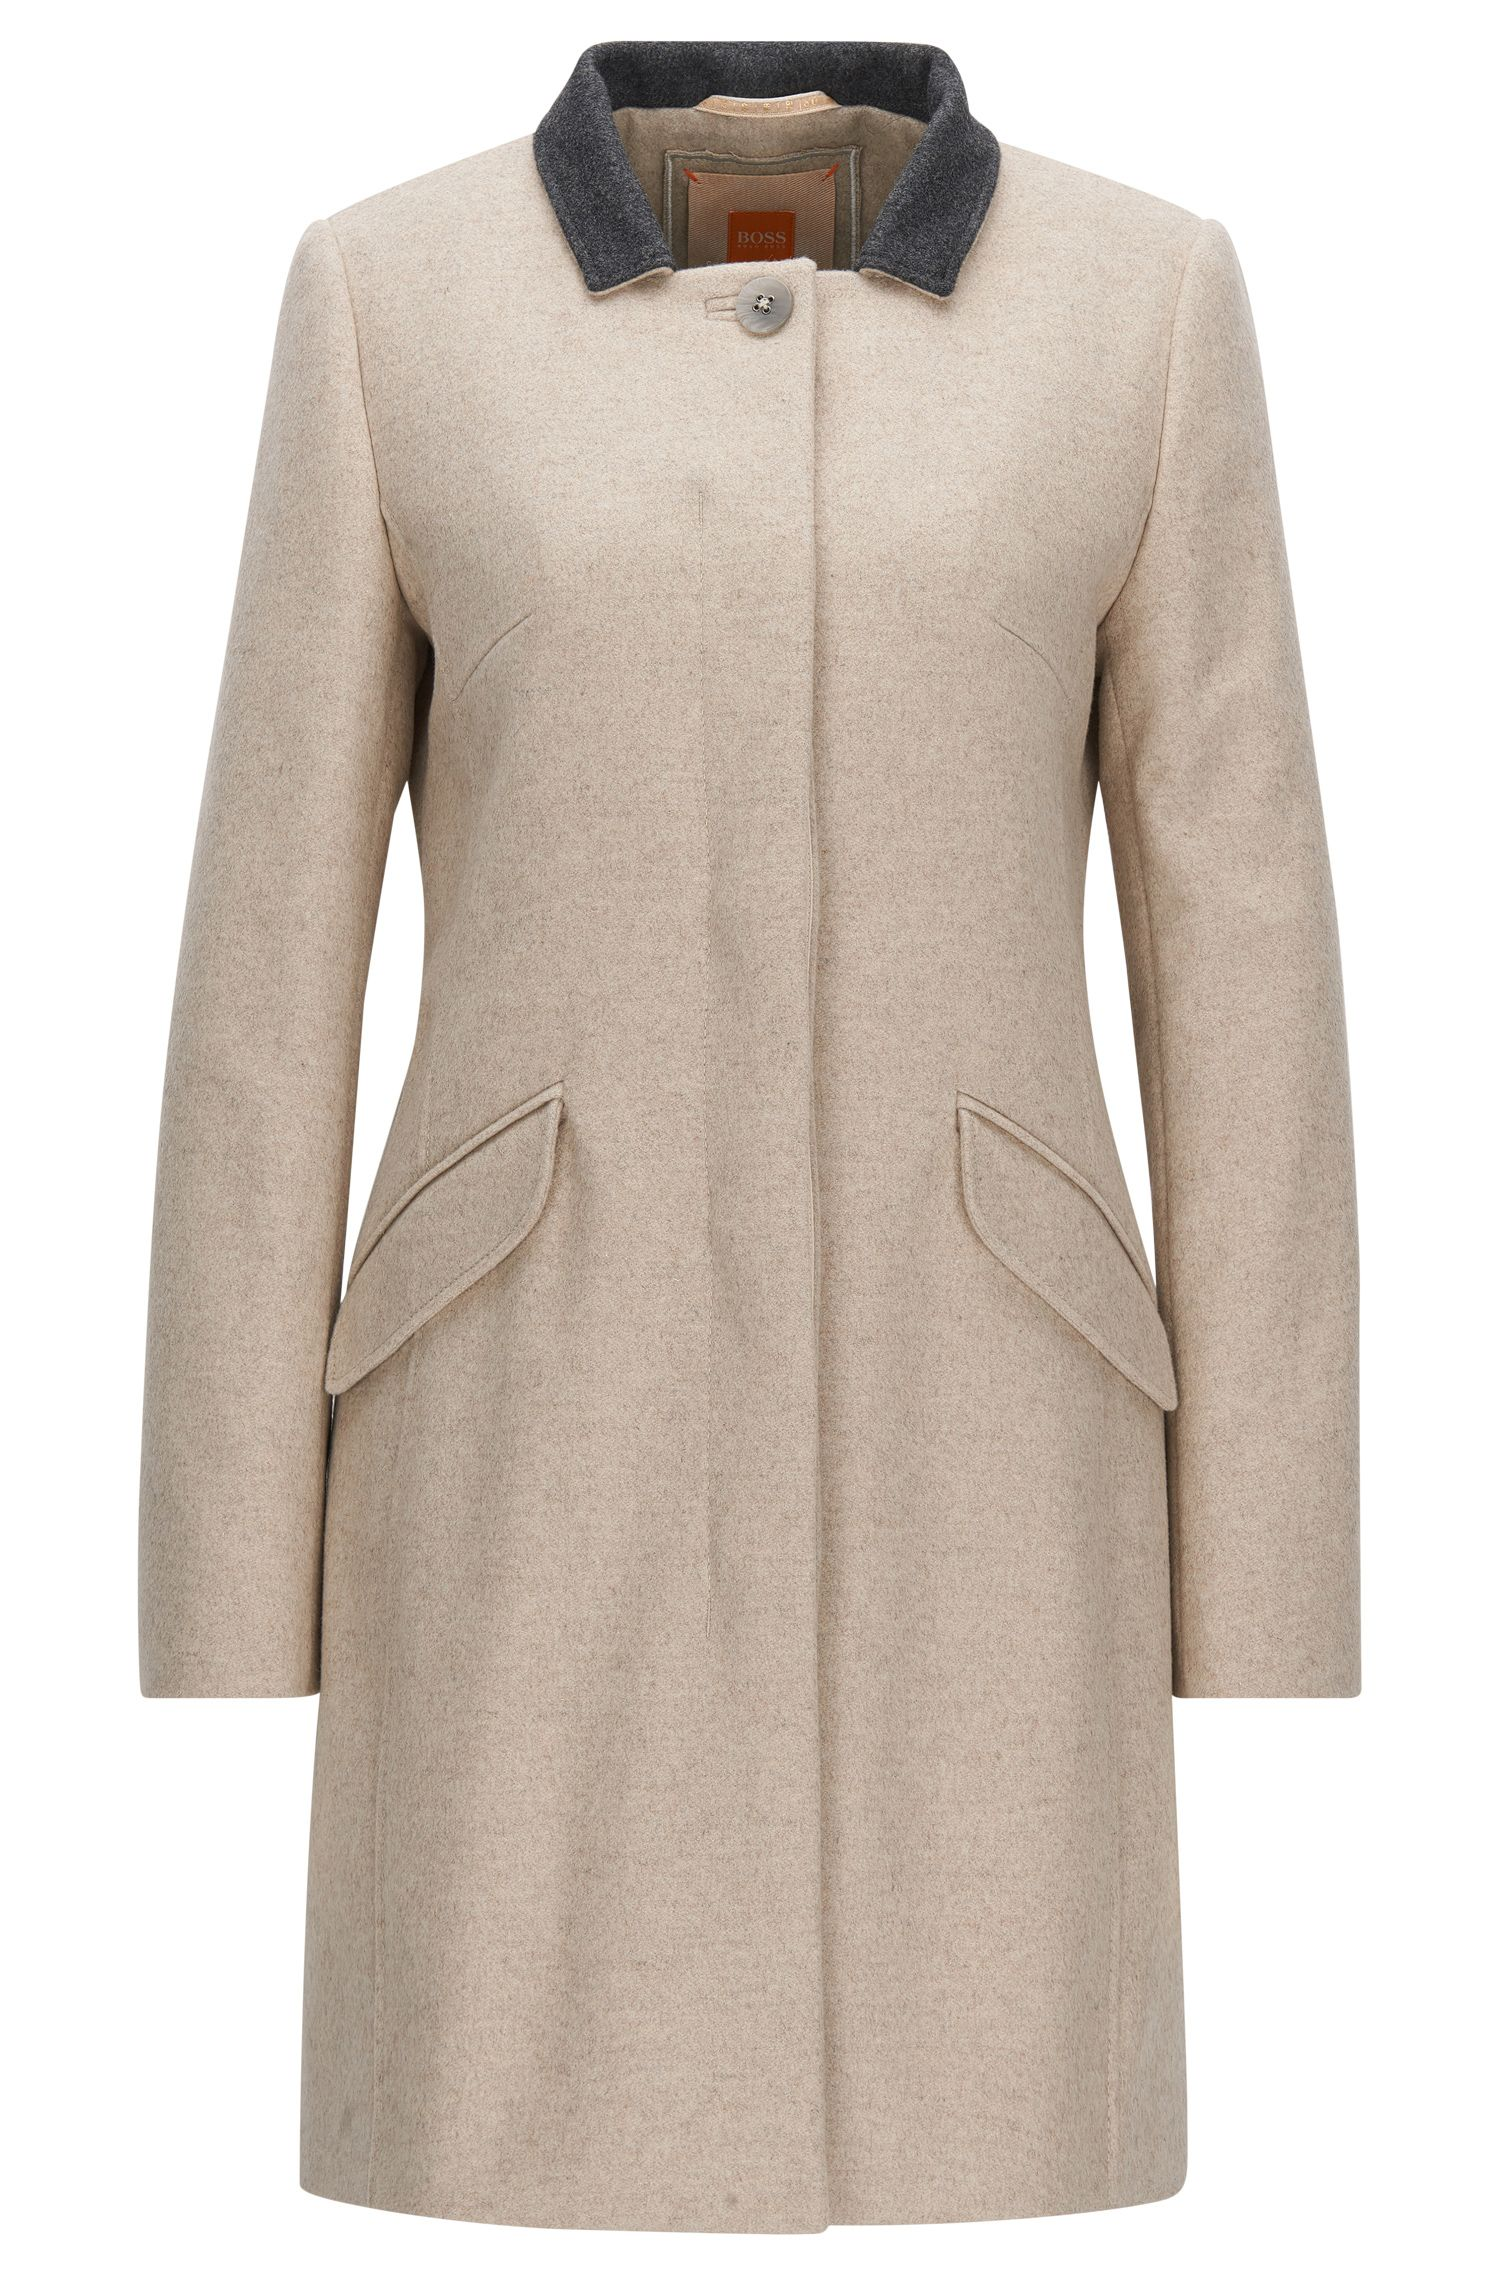 Regular-fit wool-blend coat with concealed button closure